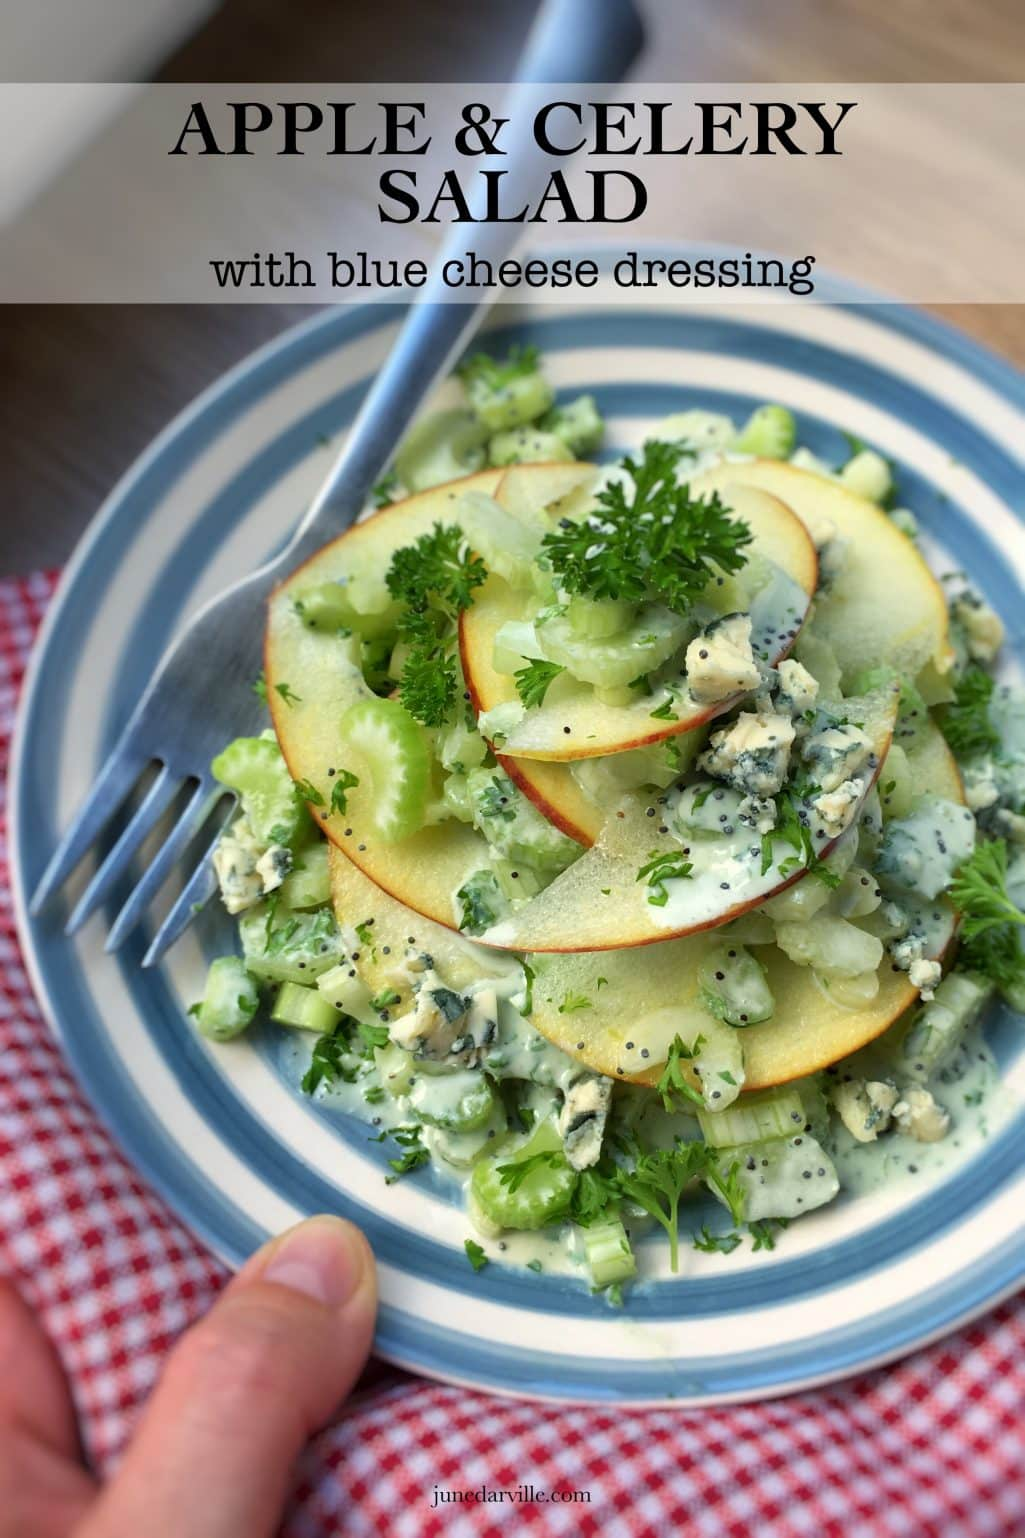 Celery Salad with Apple & Blue Cheese Dressing